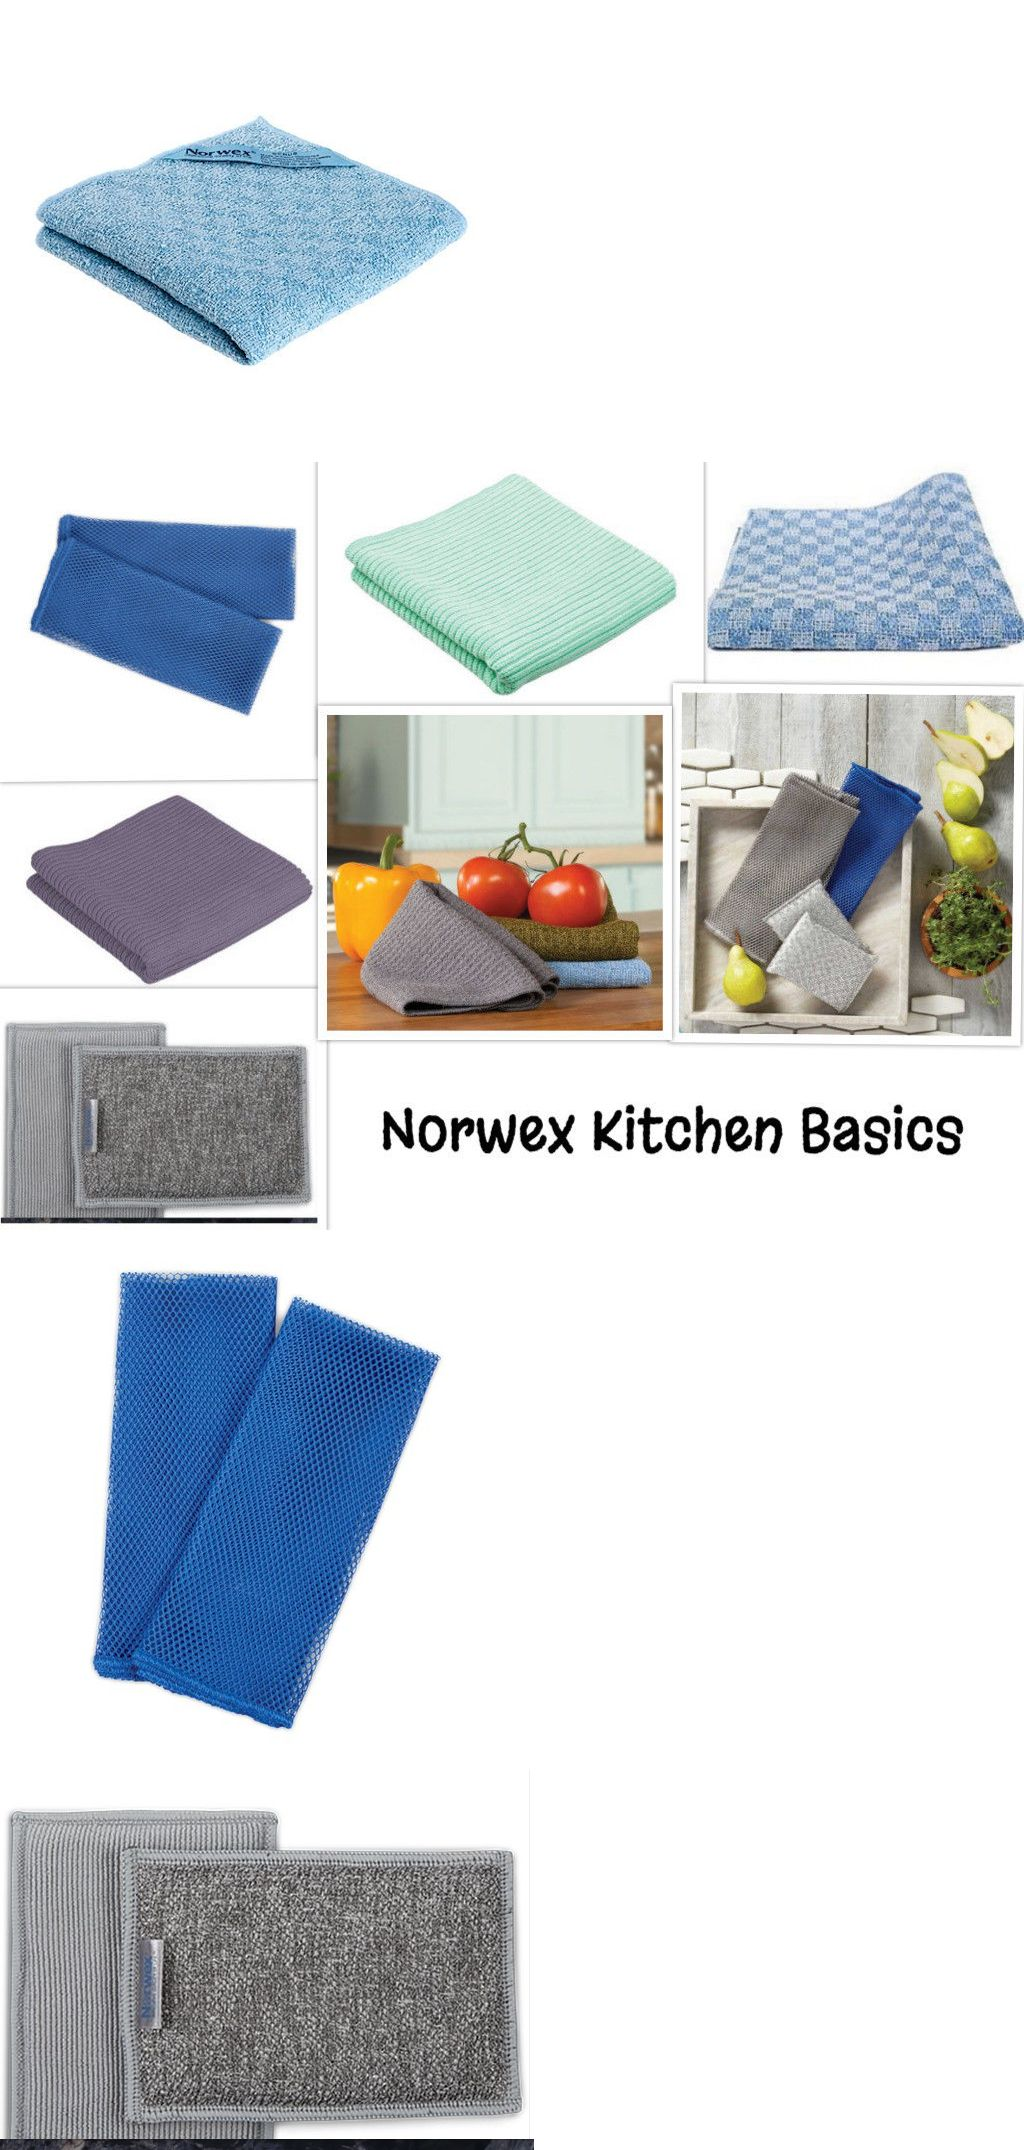 Cleaning Towels And Cloths 29509 Norwex Scrub Cloth Netted Dish